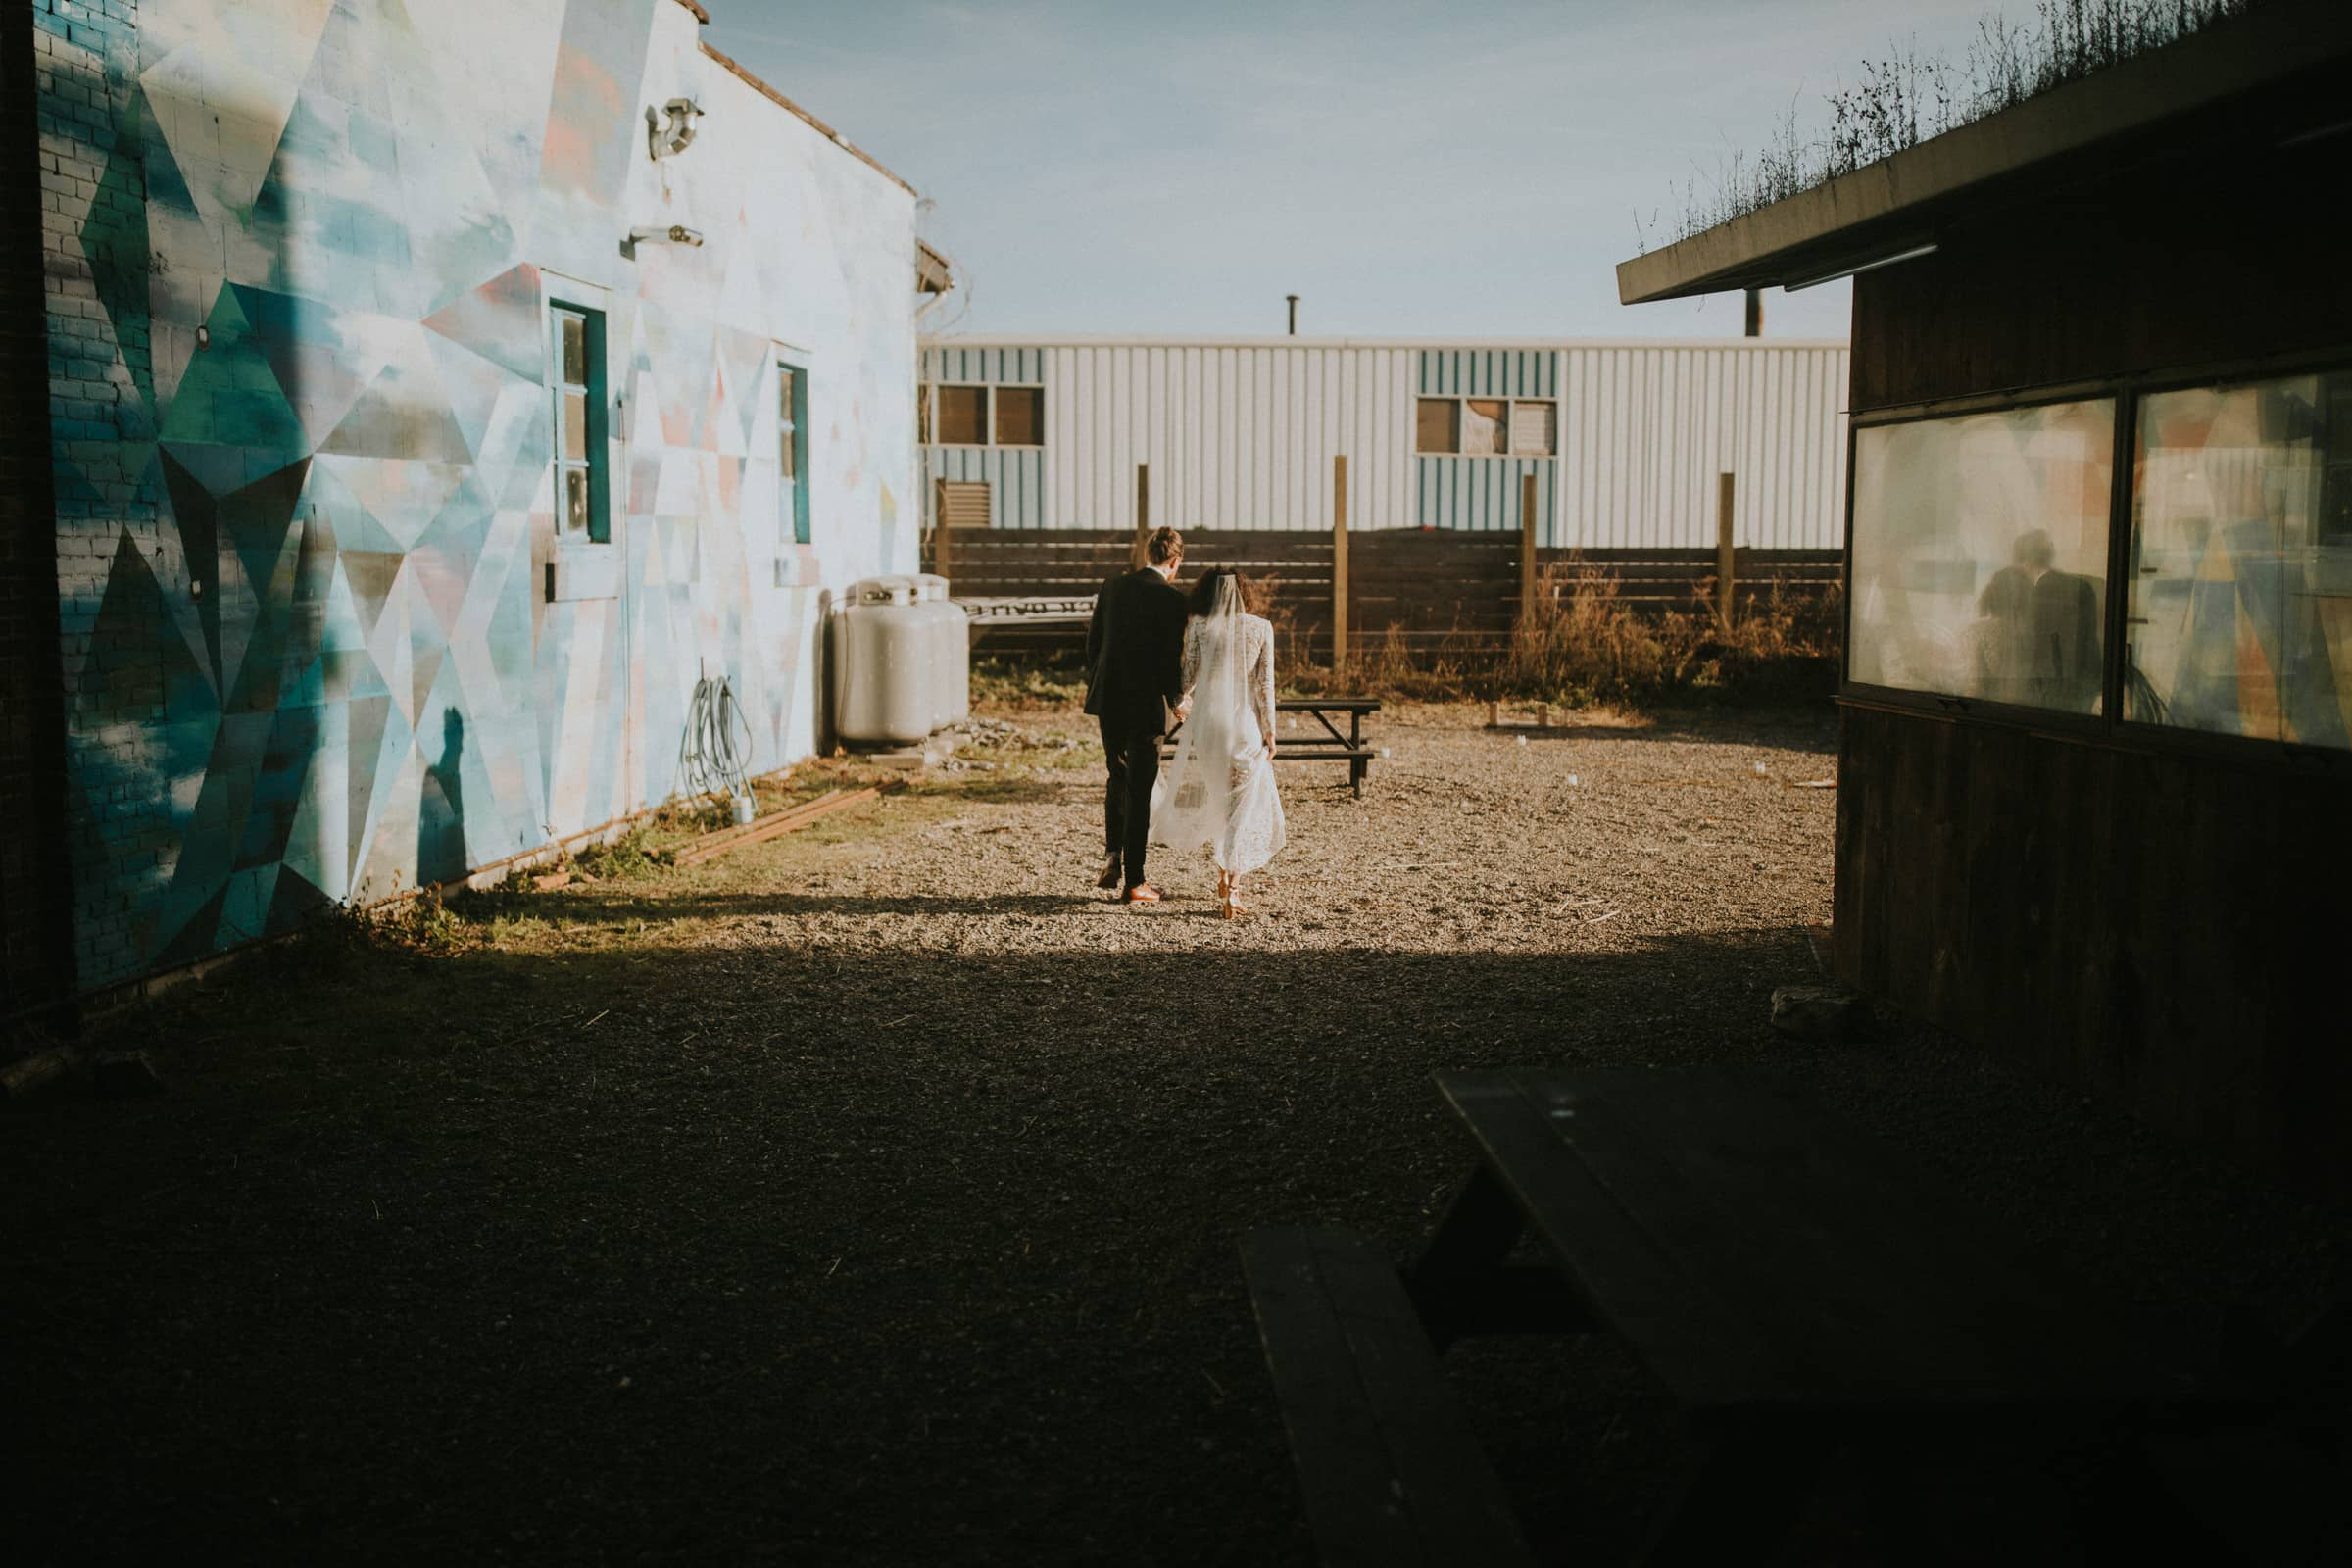 The wedding couple is walking outside next to an industrial building.